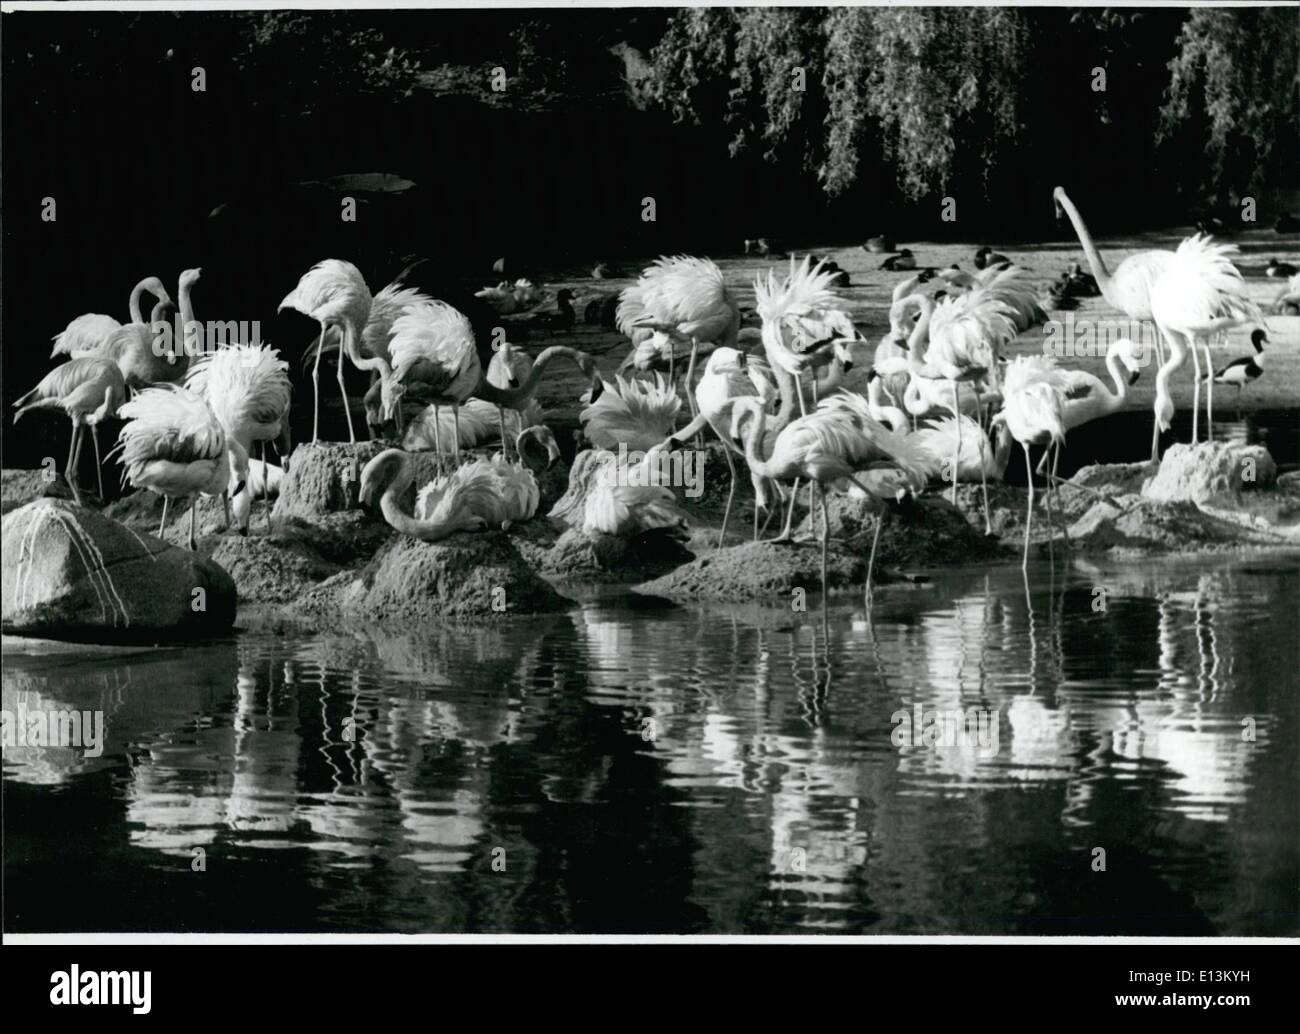 Mar. 02, 2012 - Slowly they feel like home in southern regions the flamingos in the Hamburg/ West Germany zoo Hagenbeck. The first warm days were greeted by the whole flaming family. At this occasion the feathers got muffled and the first stalky steps into the water got done. The visitors saw a picture like in the Cam argue in Southern France, the home of the pink flamingos. - Stock Image